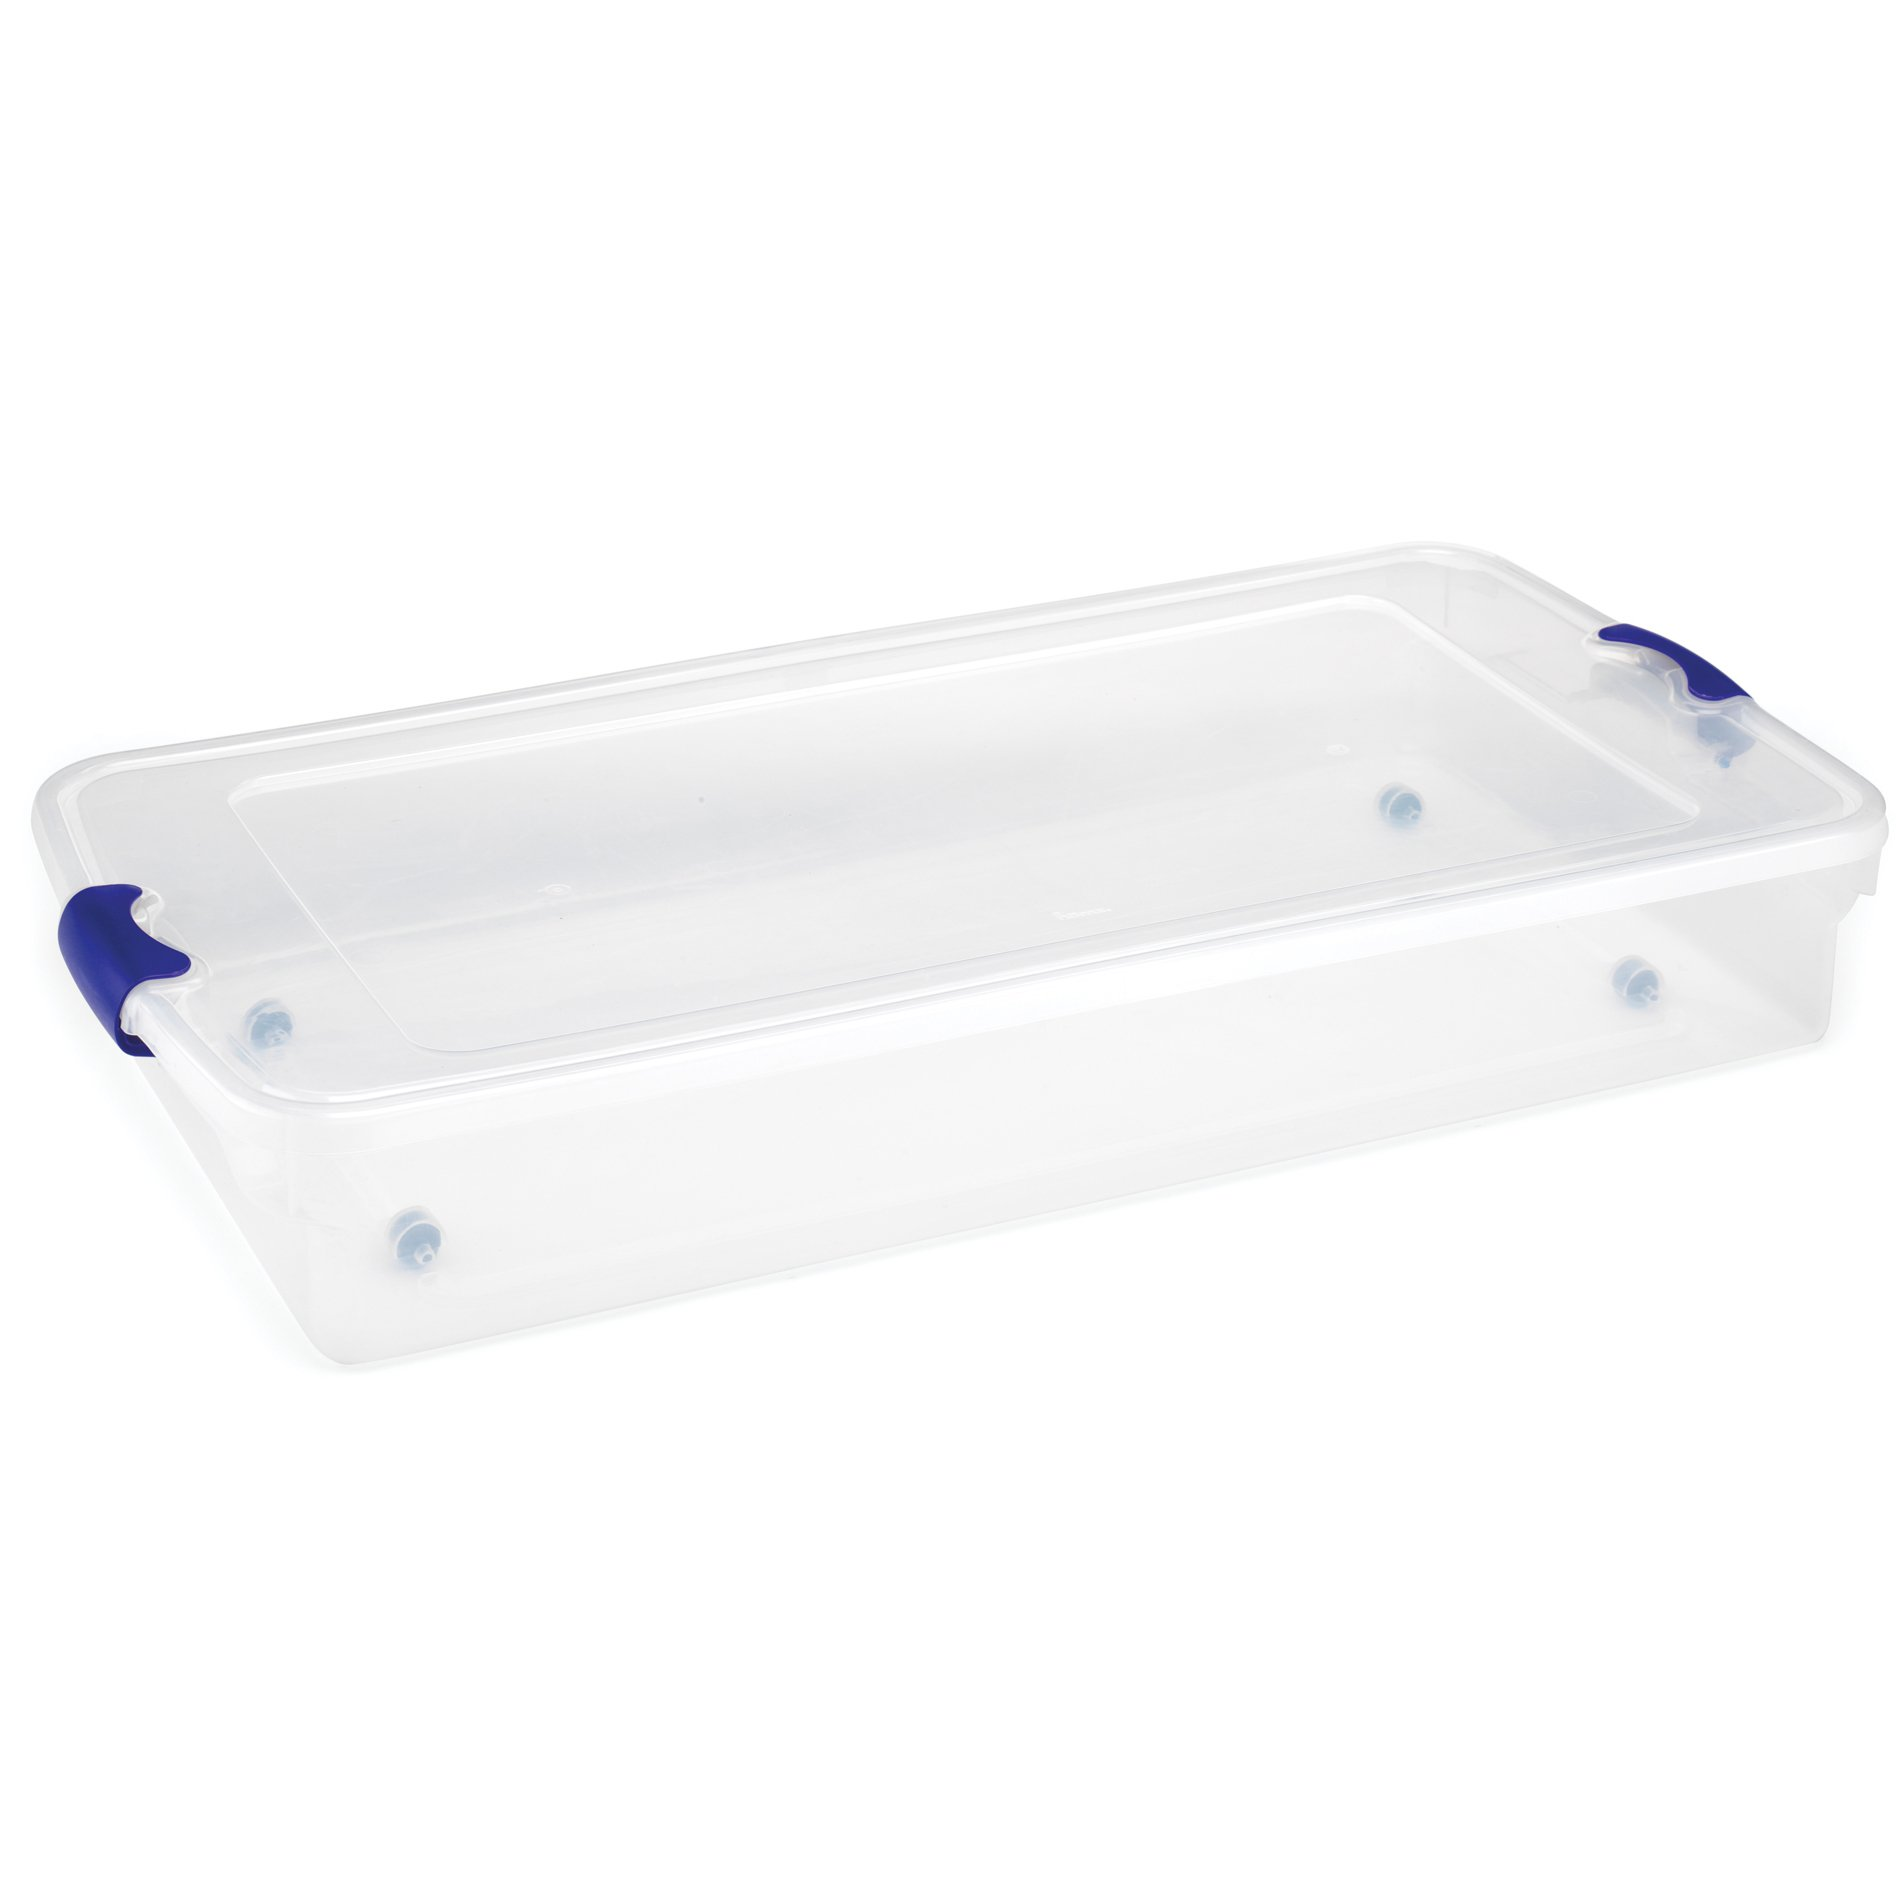 Homz Plastic Underbed Storage, Stackable Storage Bins with Blue Latching Handles, 60 Quart, Clear, 2-Pack by Homz